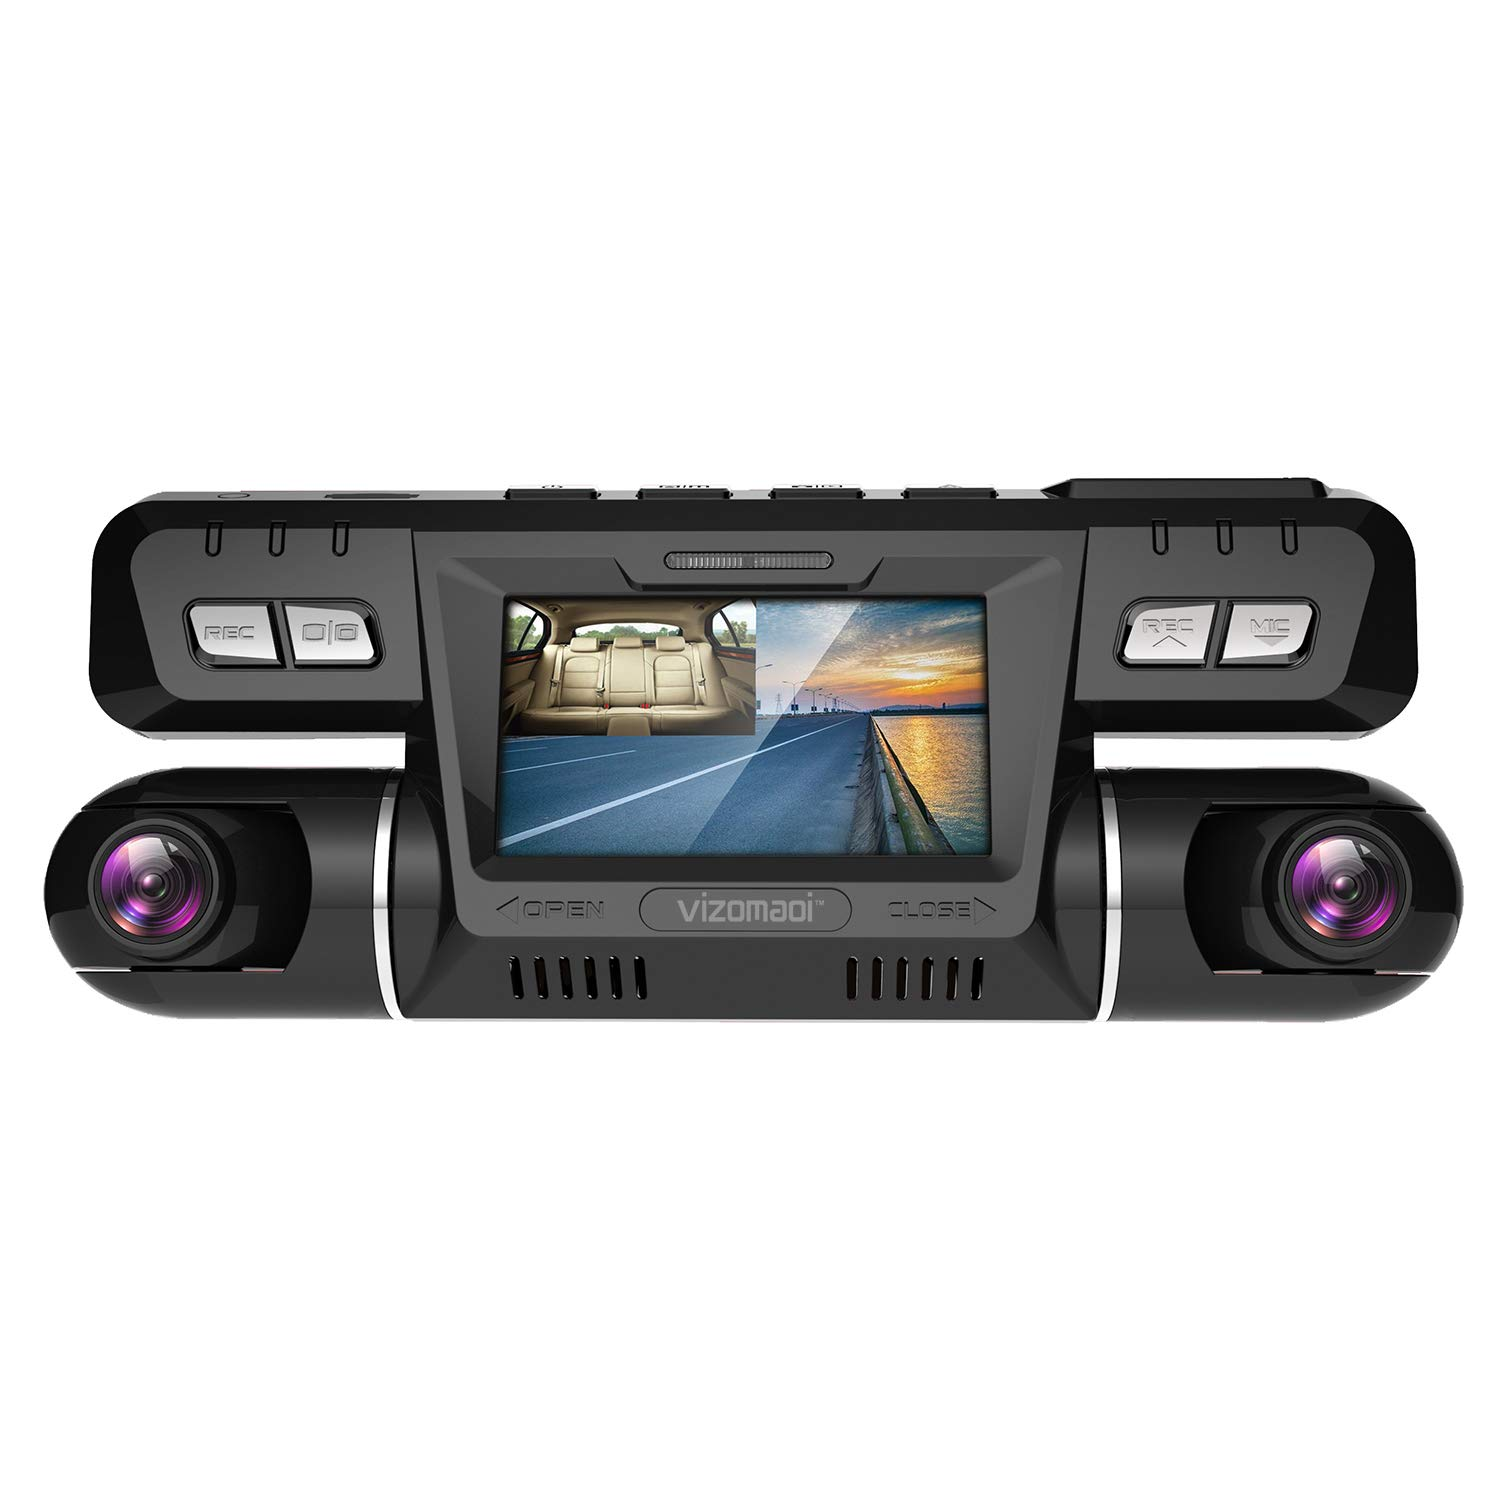 Vizomaoi P28 Dash Cam with WiFi, Dual 1920x1080P Front and Cabin Dash Camera for Cars, Uber Taxi